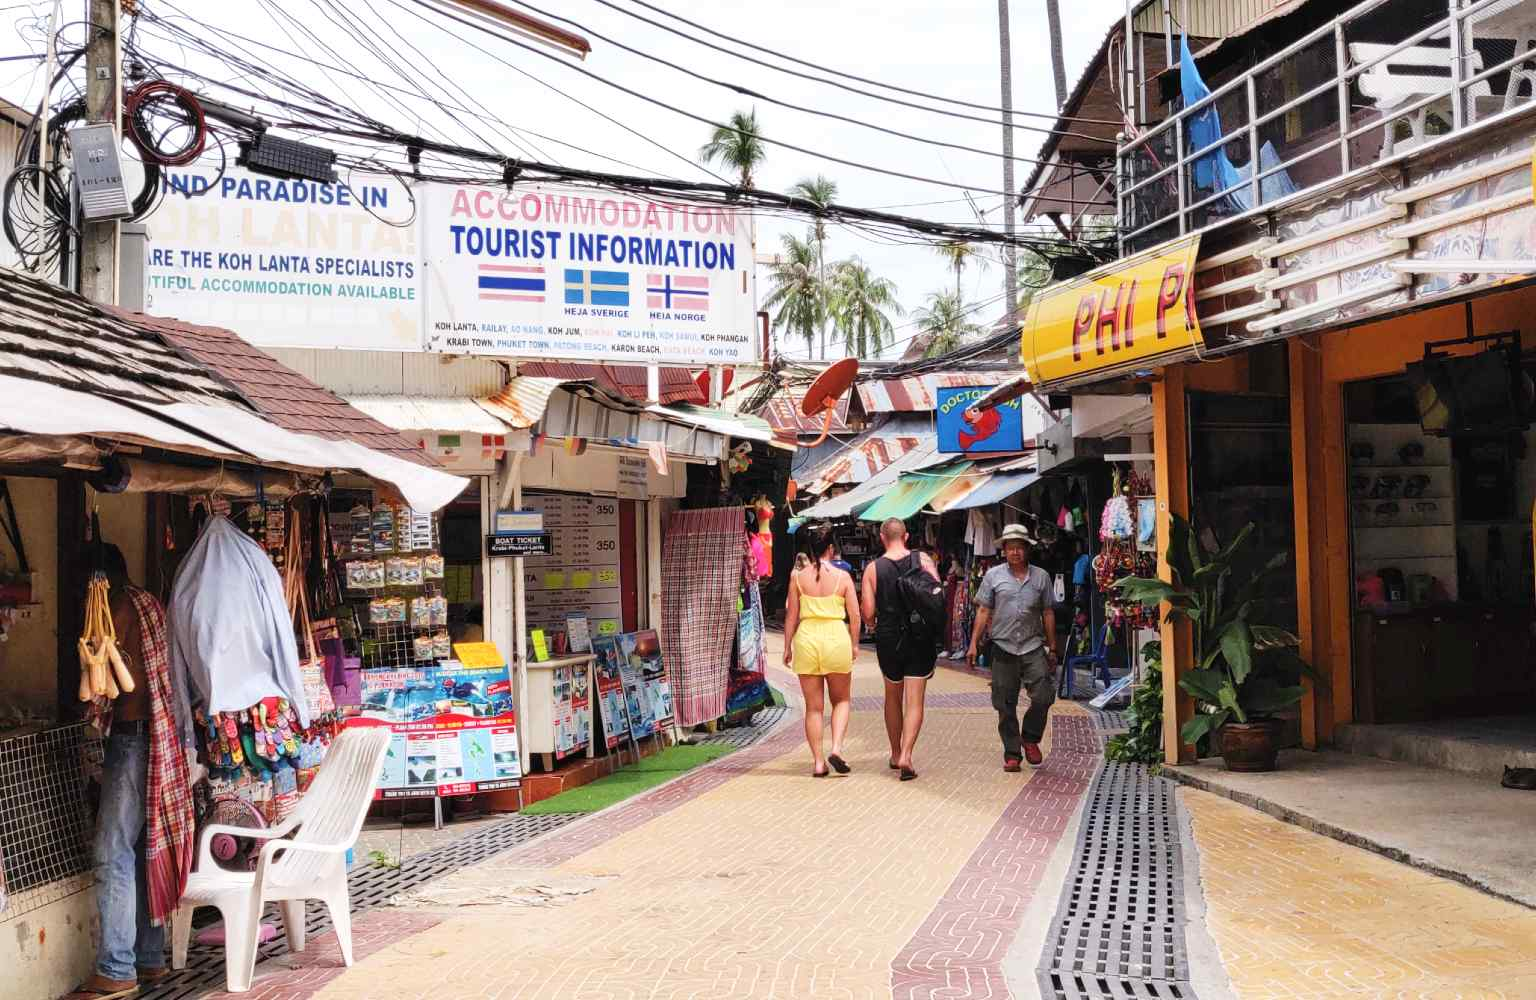 The main street of Ton Sai Village on Koh Phi Phi